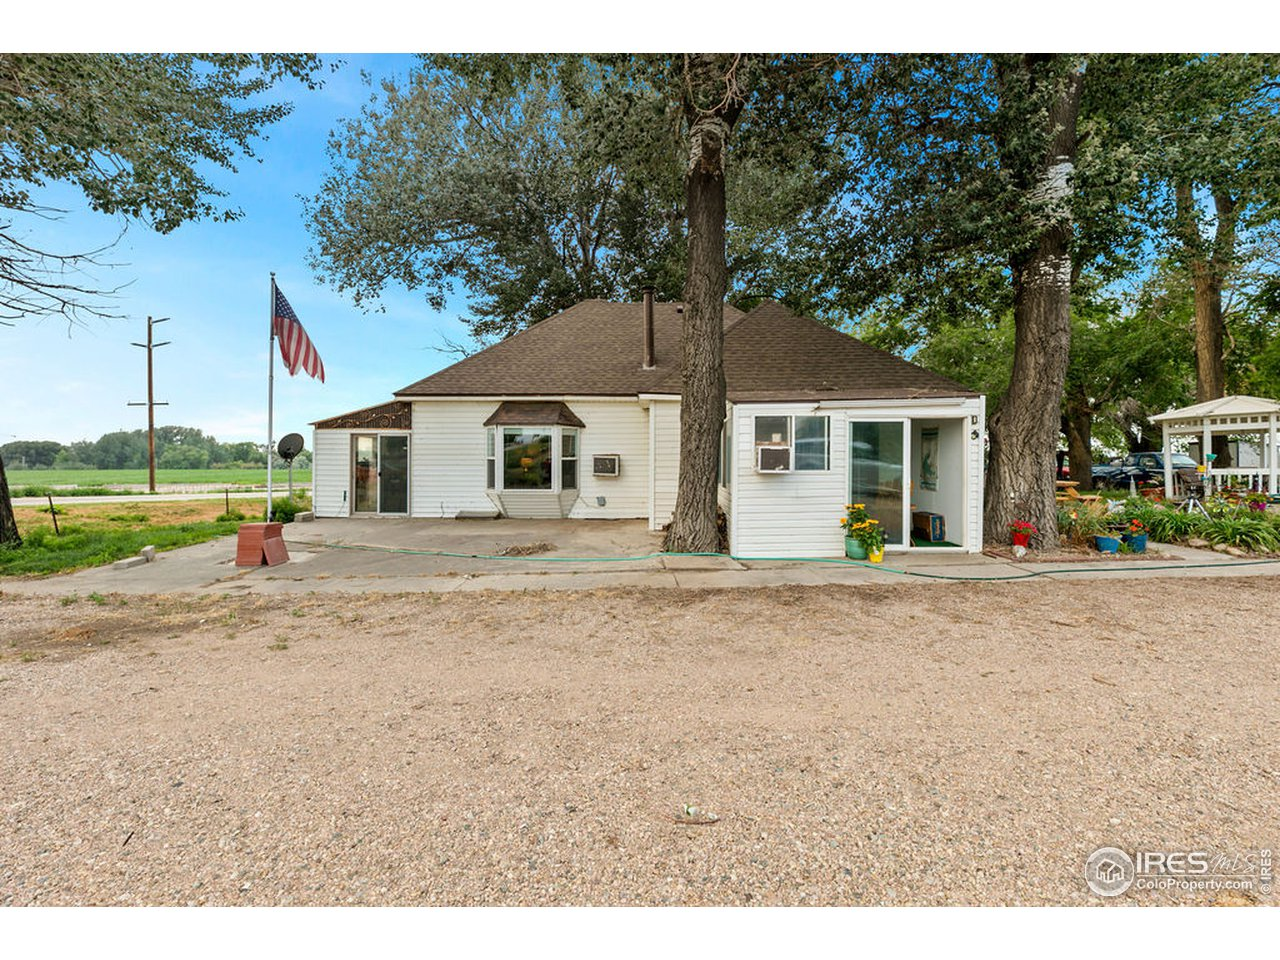 Mature trees, plenty of parking, and a large patio on the east side welcome you to 13707 Hwy 14.